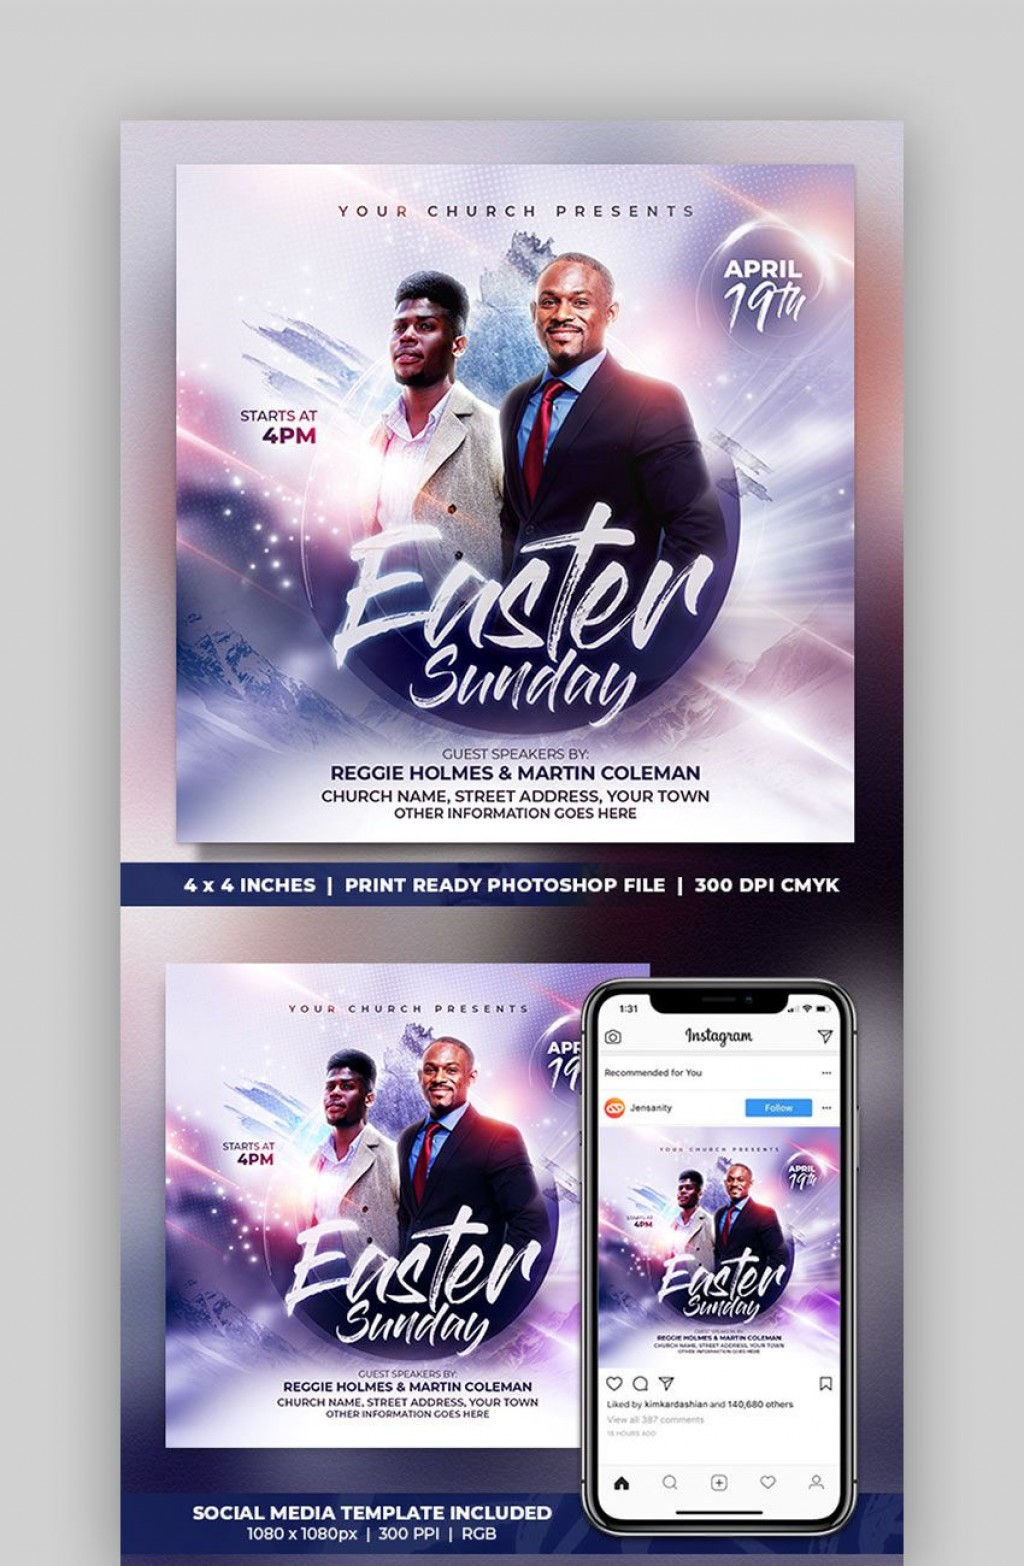 006 Striking Church Flyer Template Free Download Photo  Event PsdLarge